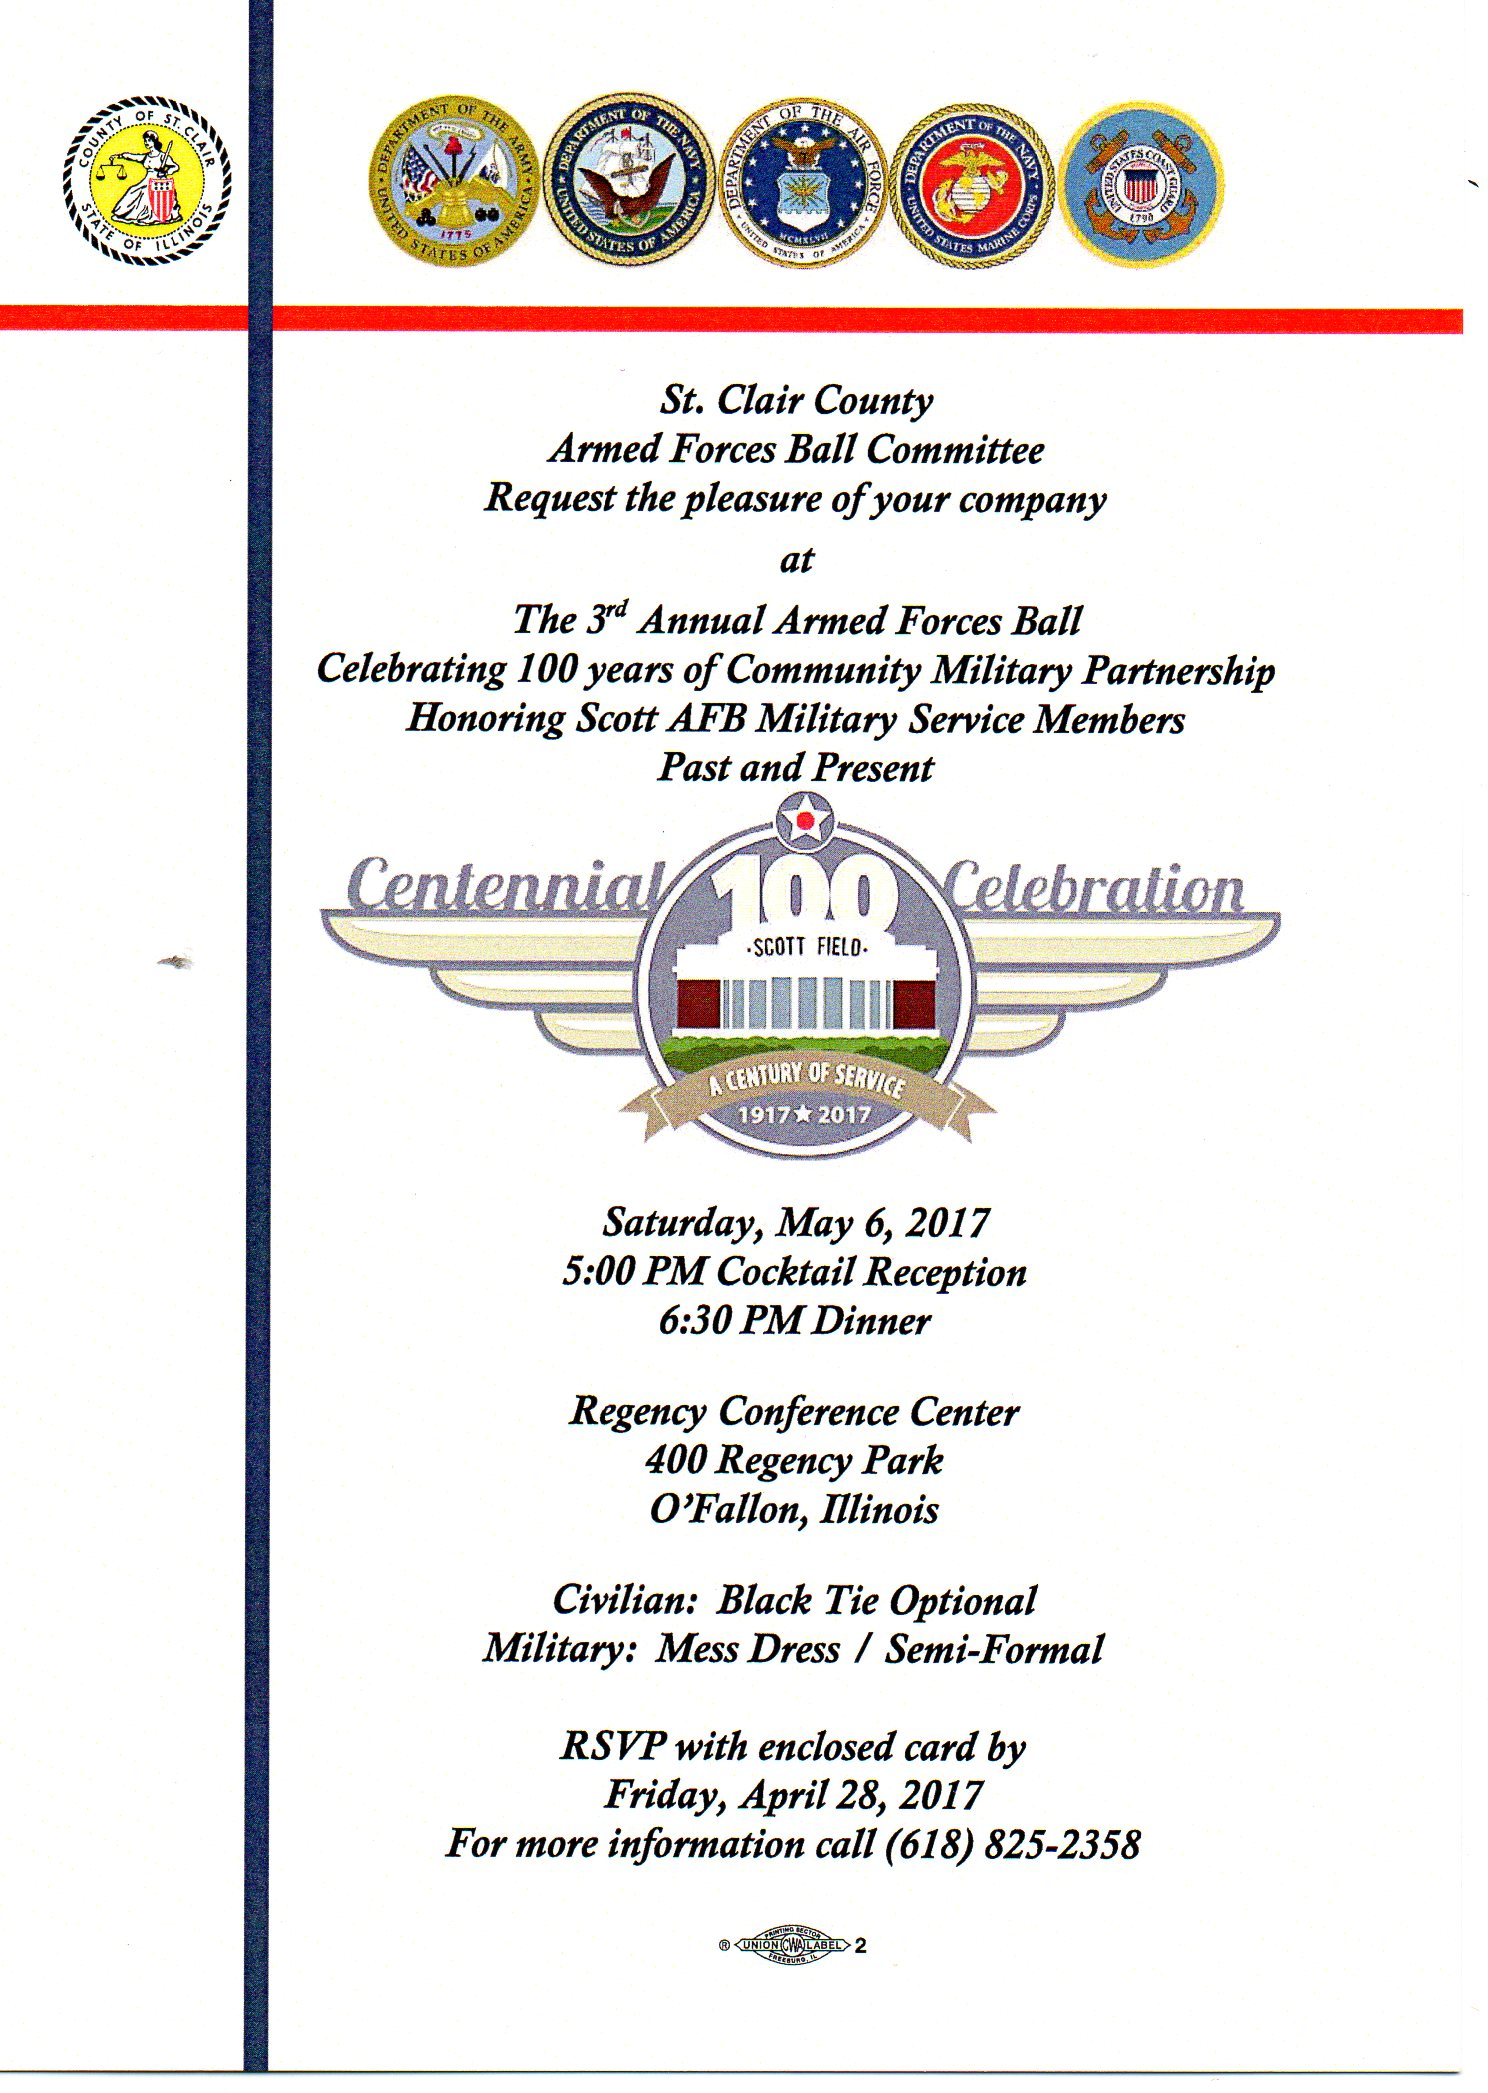 3rd Annual Armed Forces Ball